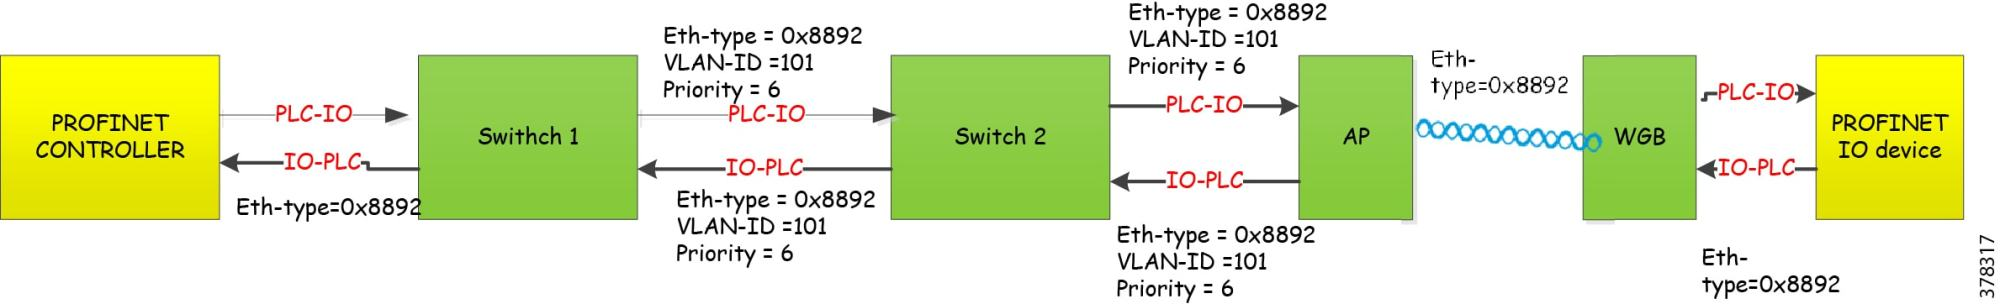 hight resolution of figure 8 traffic flow of profinet in wireless switches